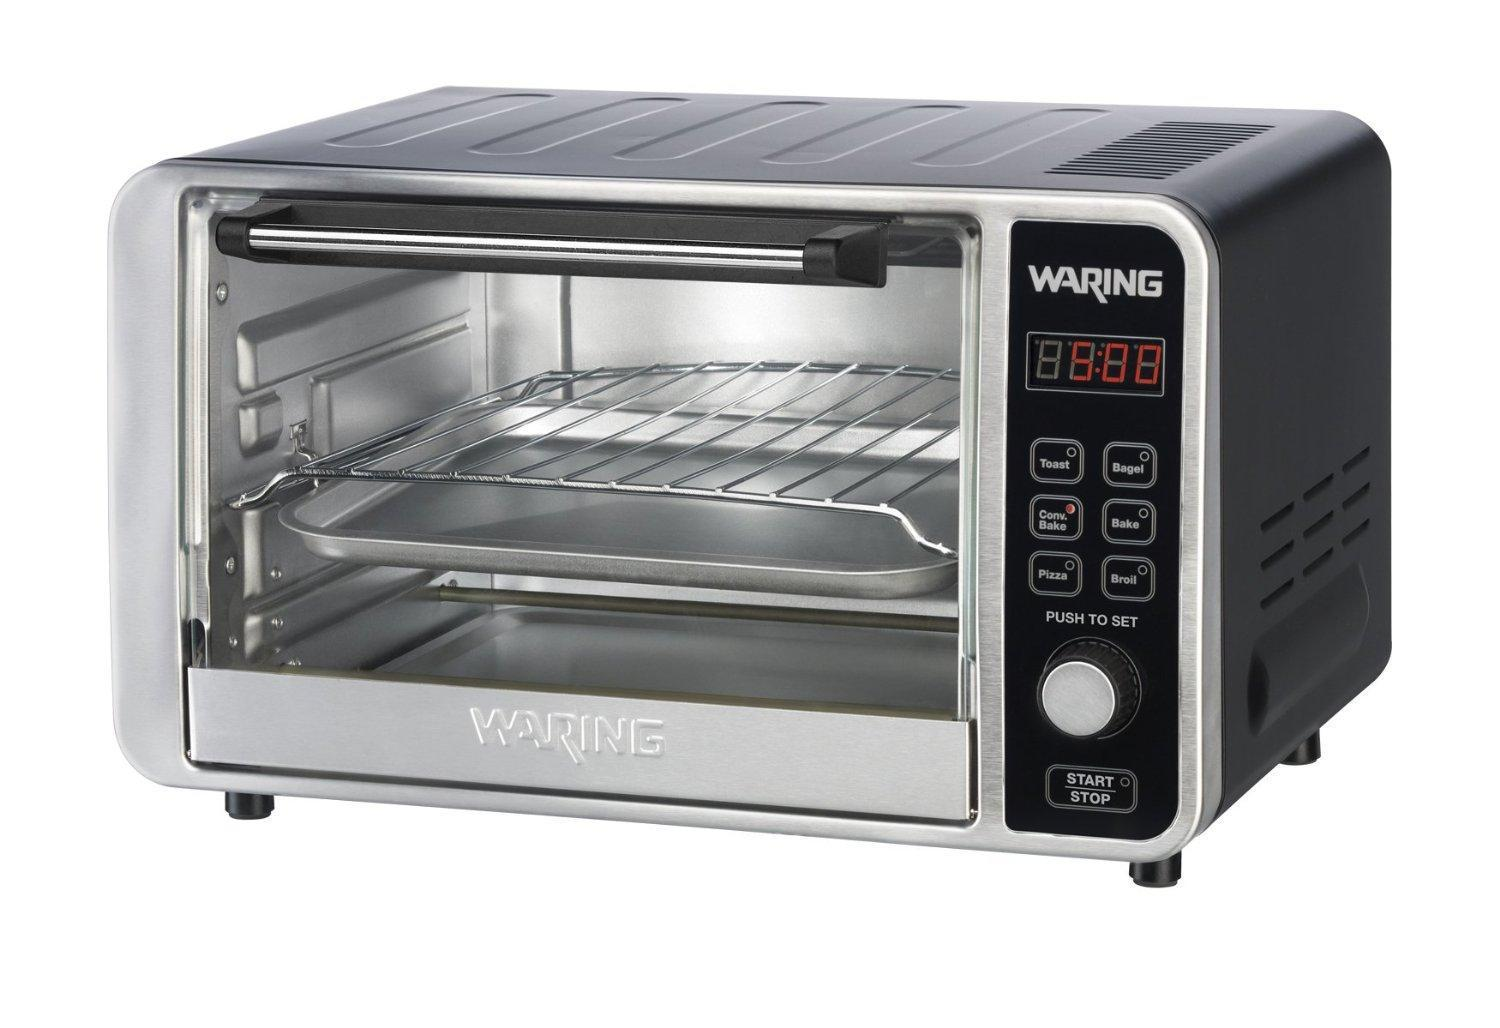 Countertop Convection Oven Best Buy : Best Buy is offering the Waring Pro Digital Convection Toaster Oven ...